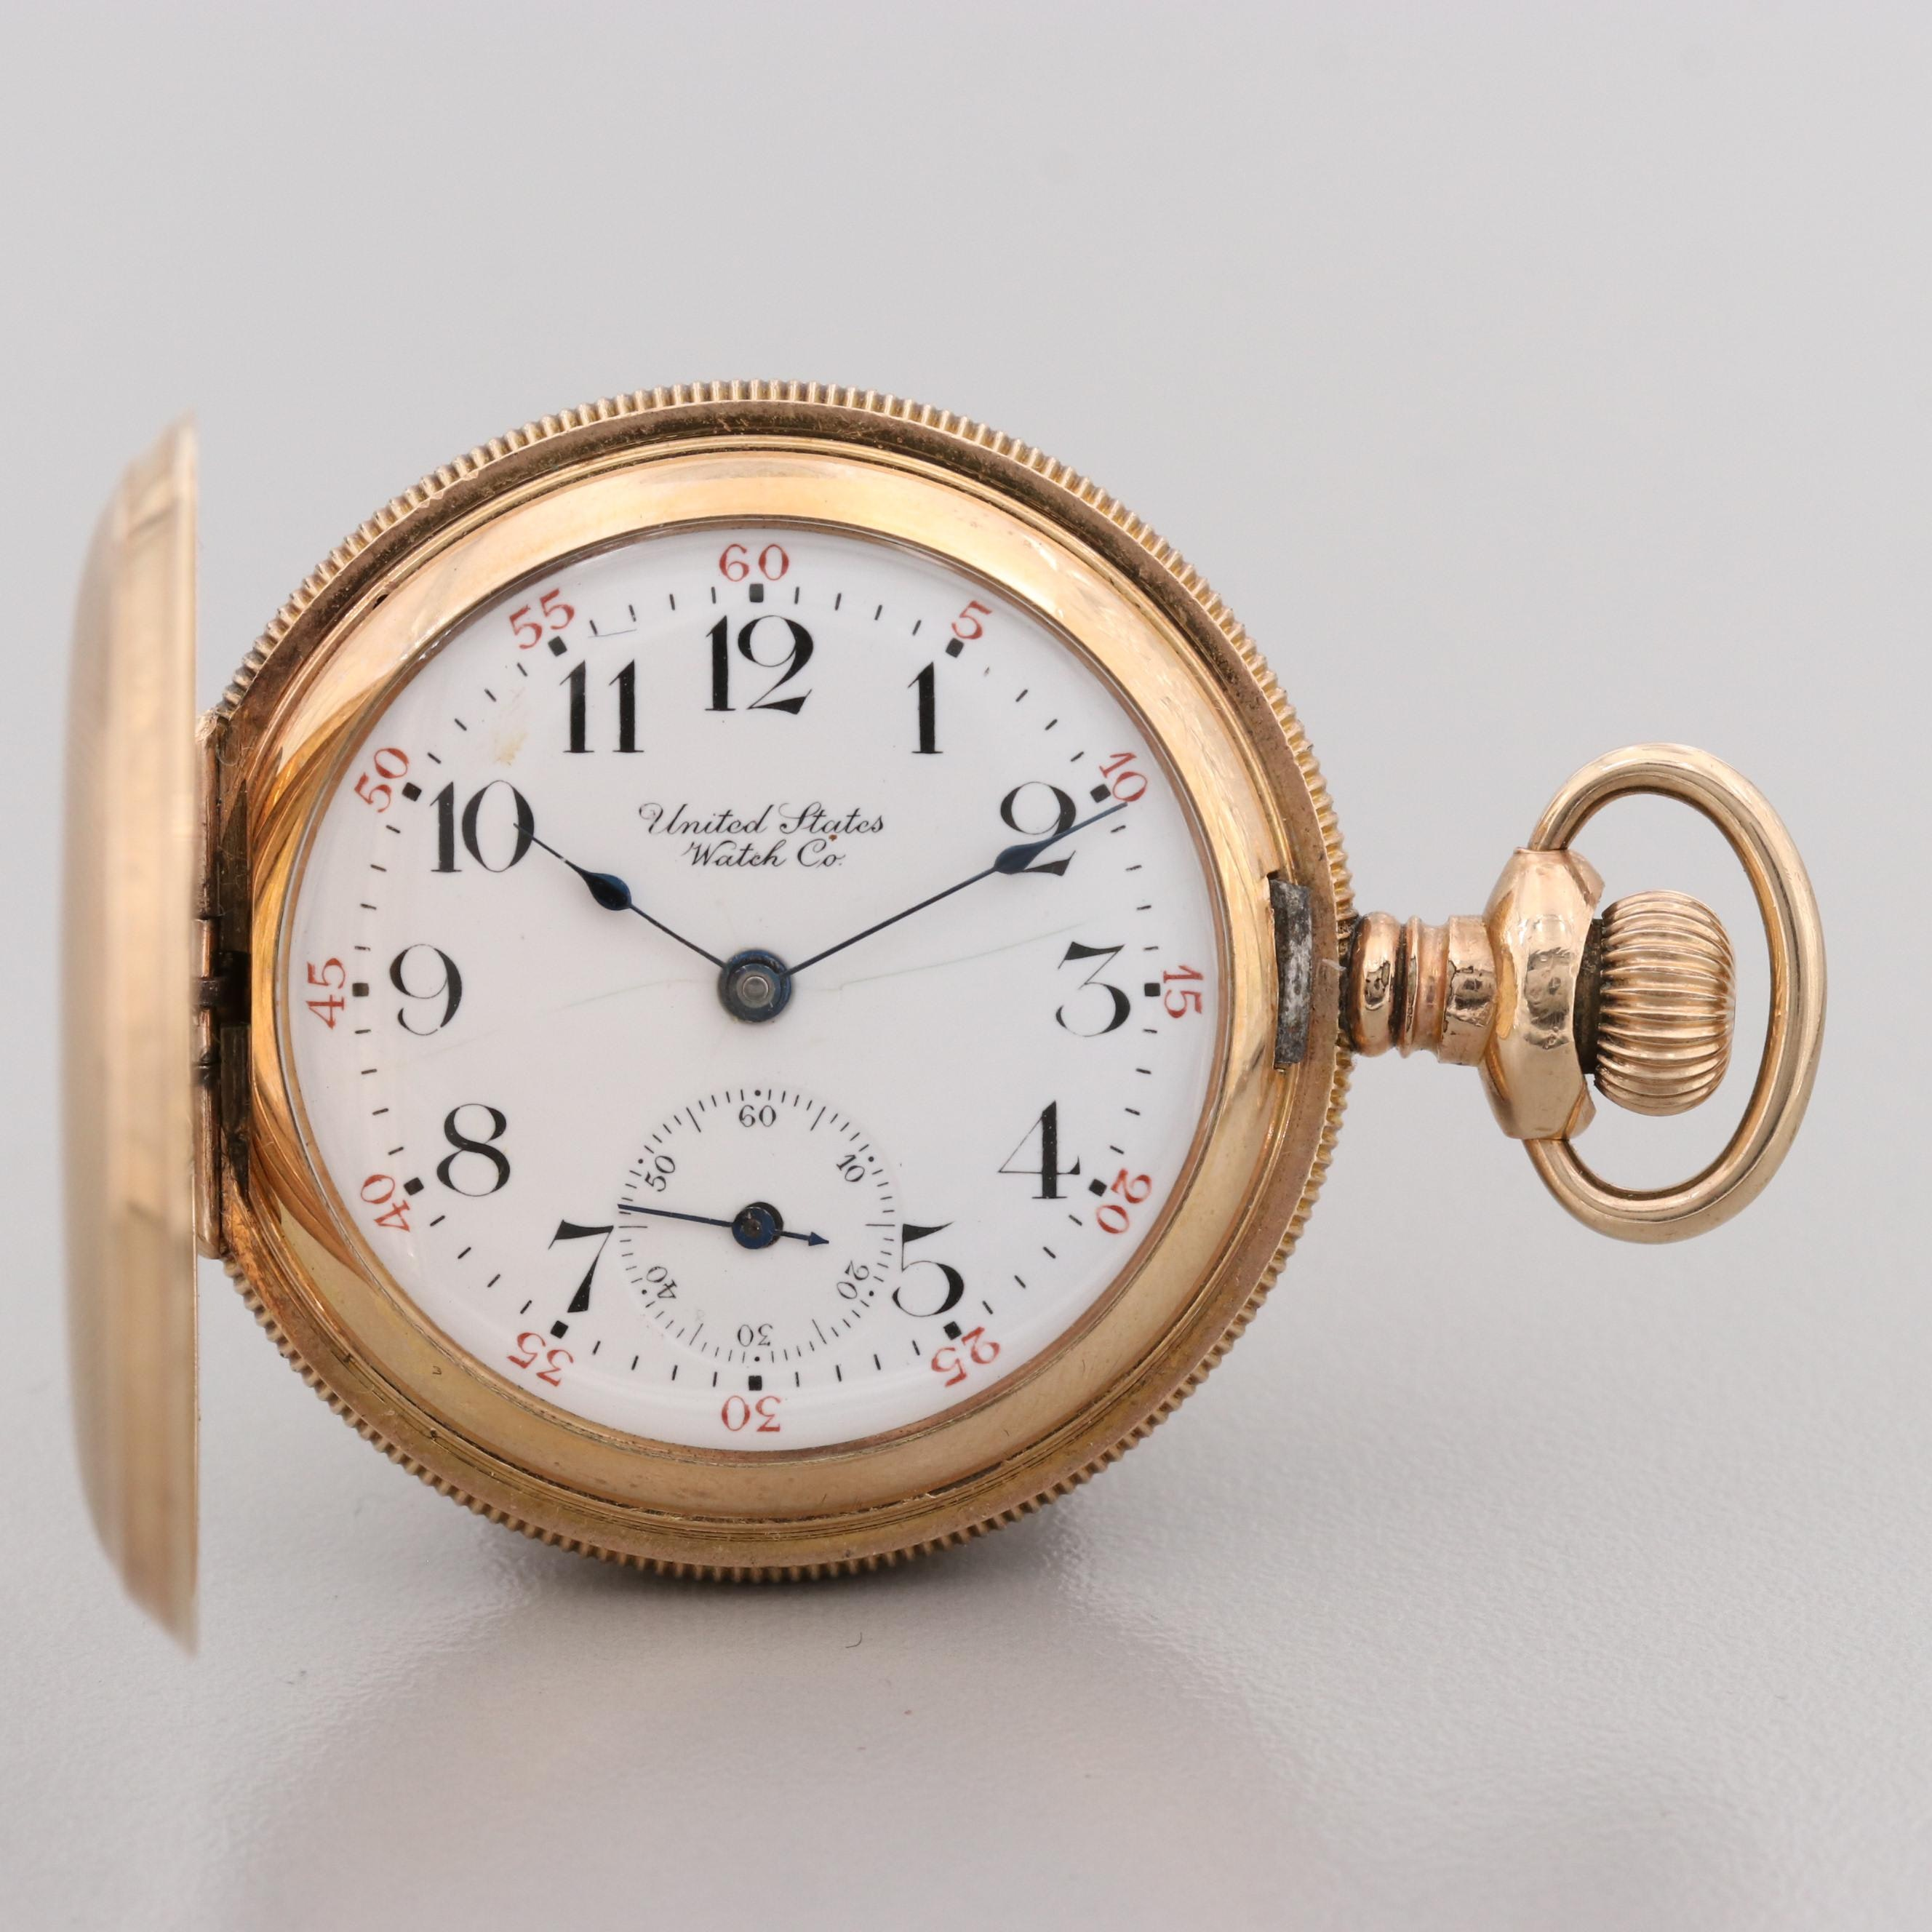 Antique U.S. Watch Co. Gold Filled Pocket Watch